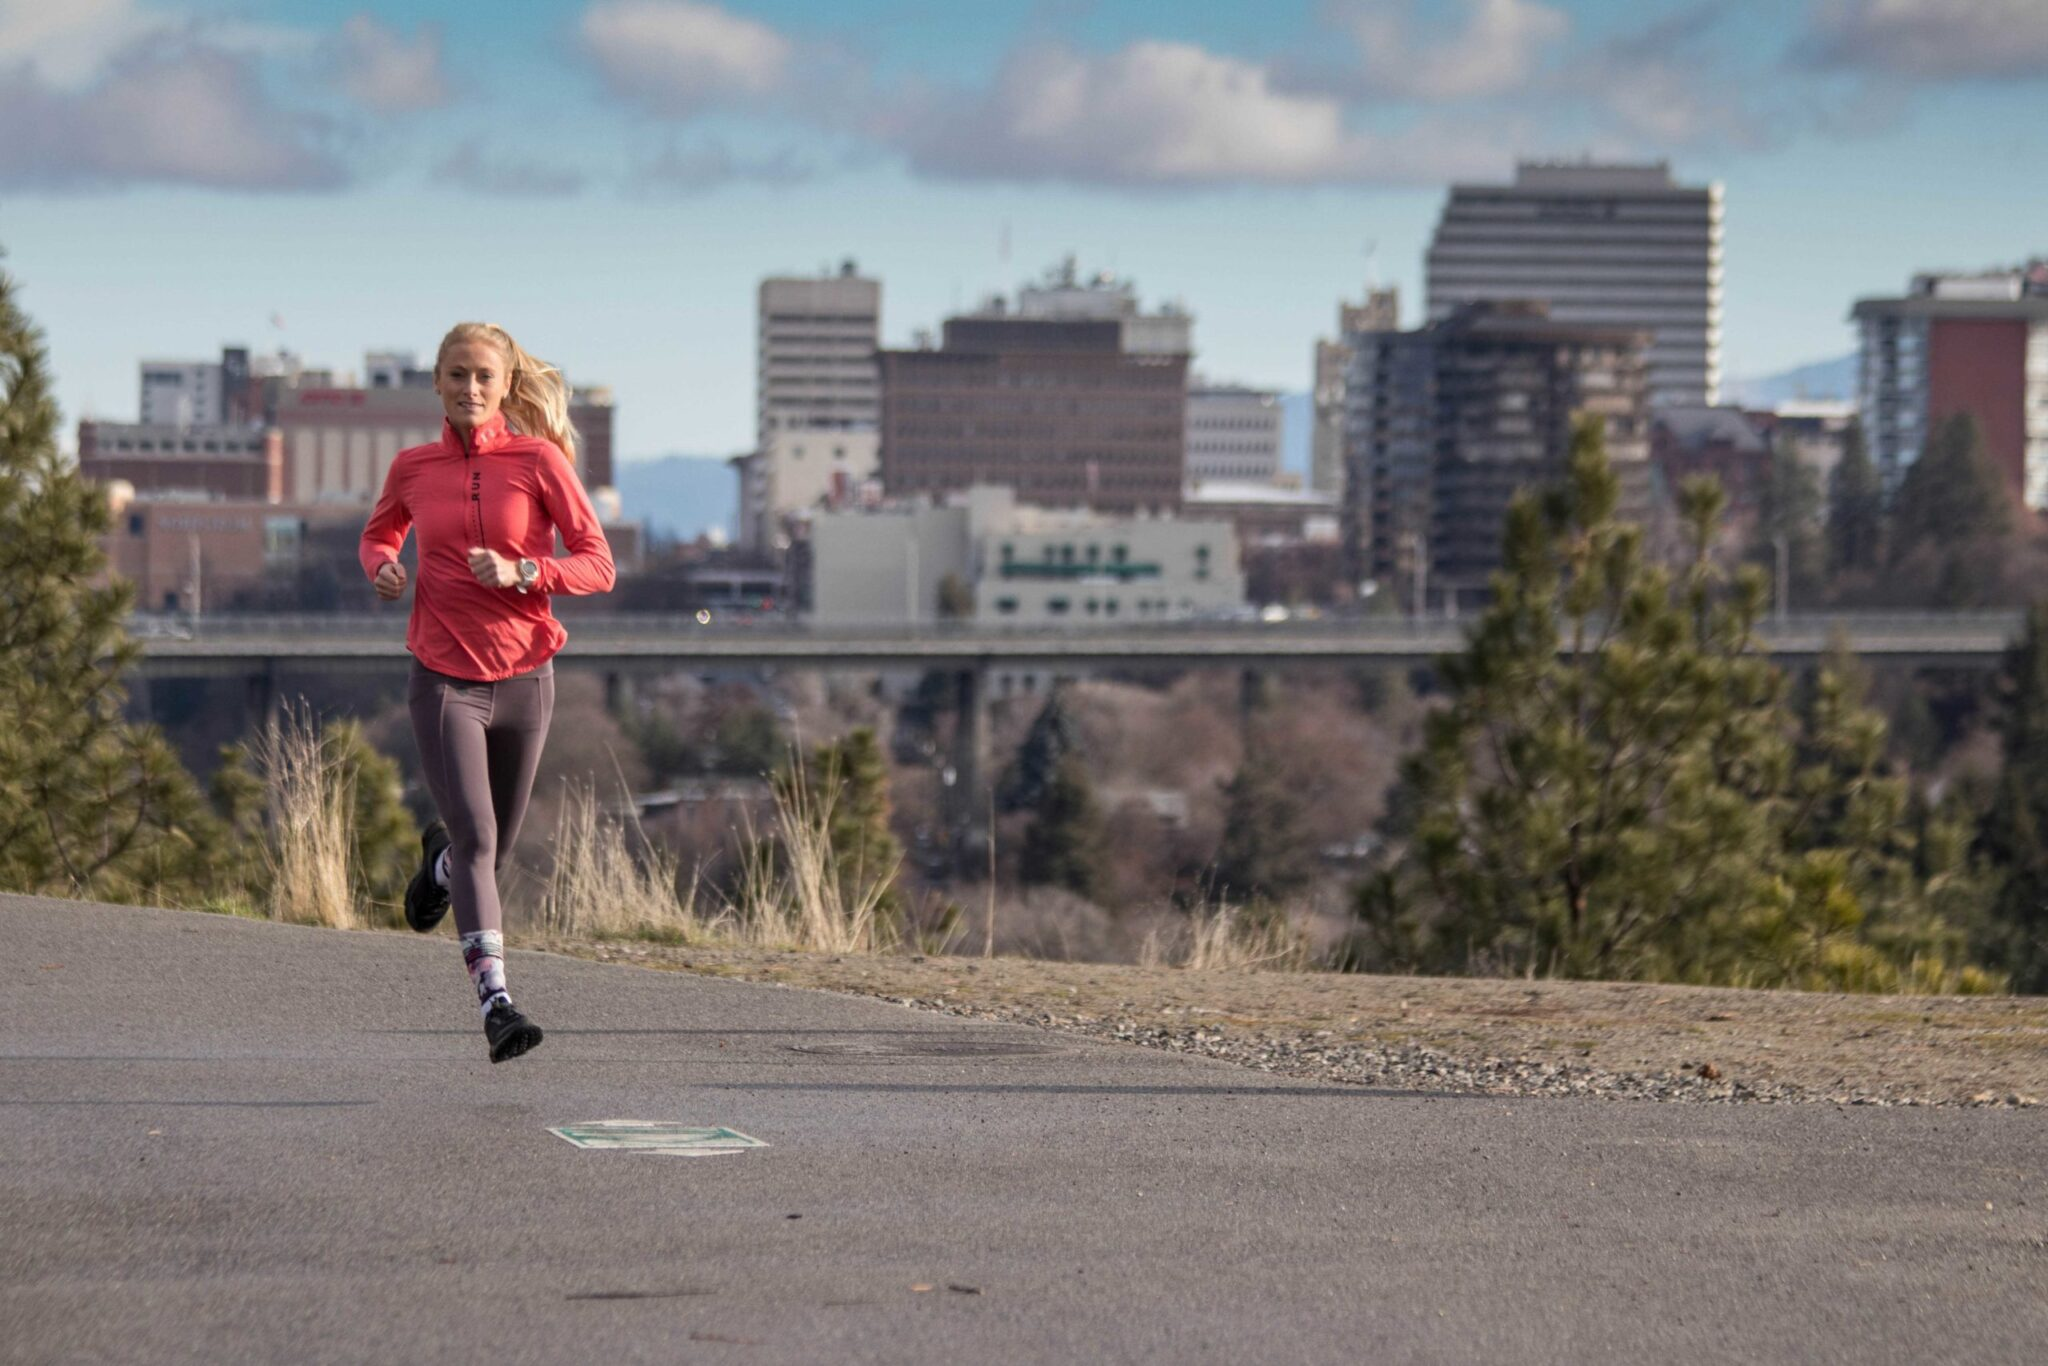 A woman running on a paved trail.